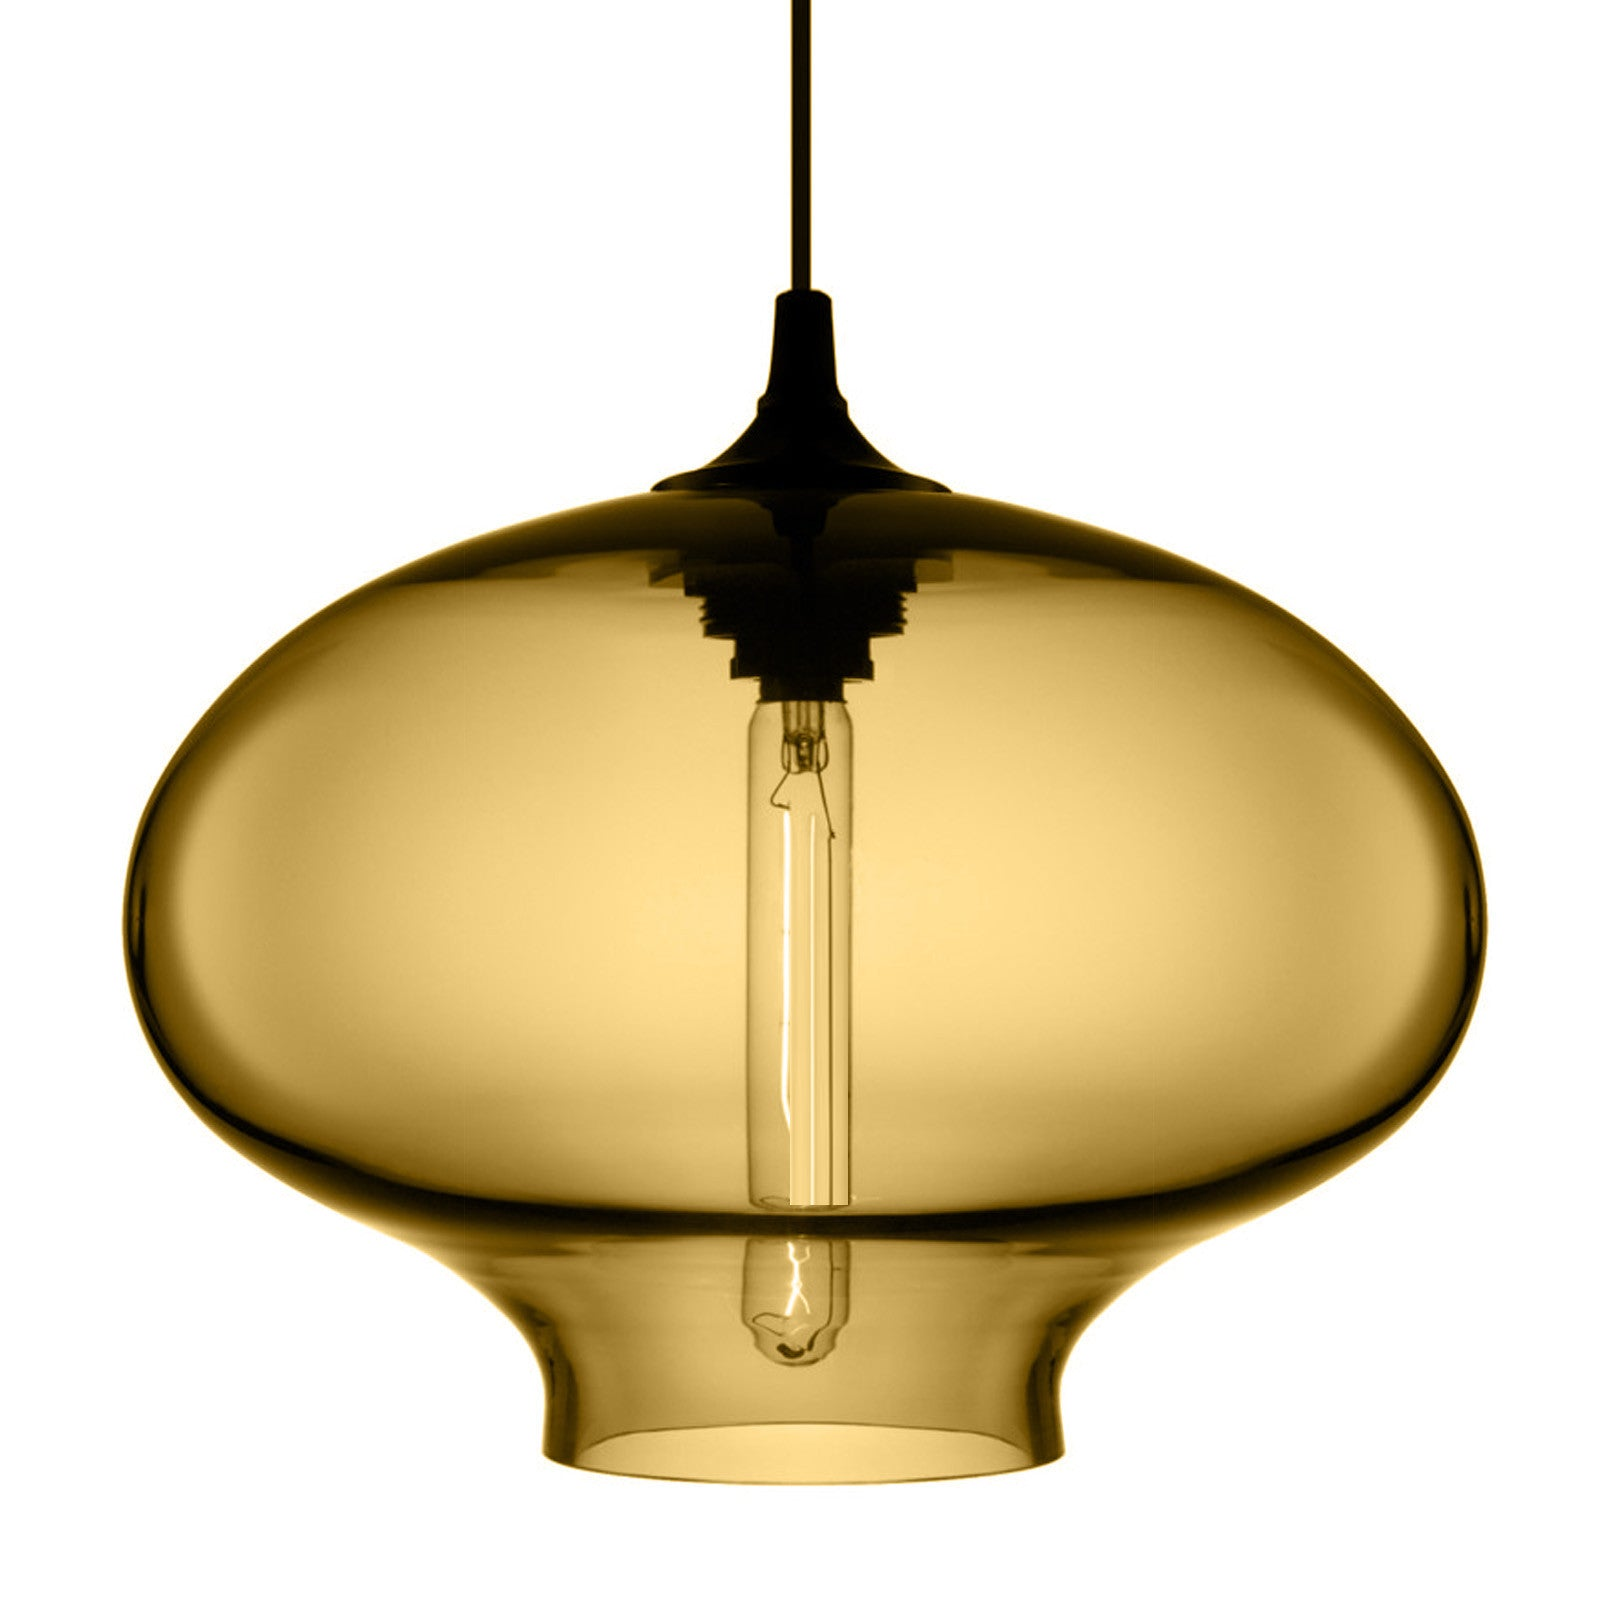 Amber Glass Pendant lamp  CY-DD-JYG-6A -  مصباح معلق من زجاج العنبر - Shop Online Furniture and Home Decor Store in Dubai, UAE at ebarza